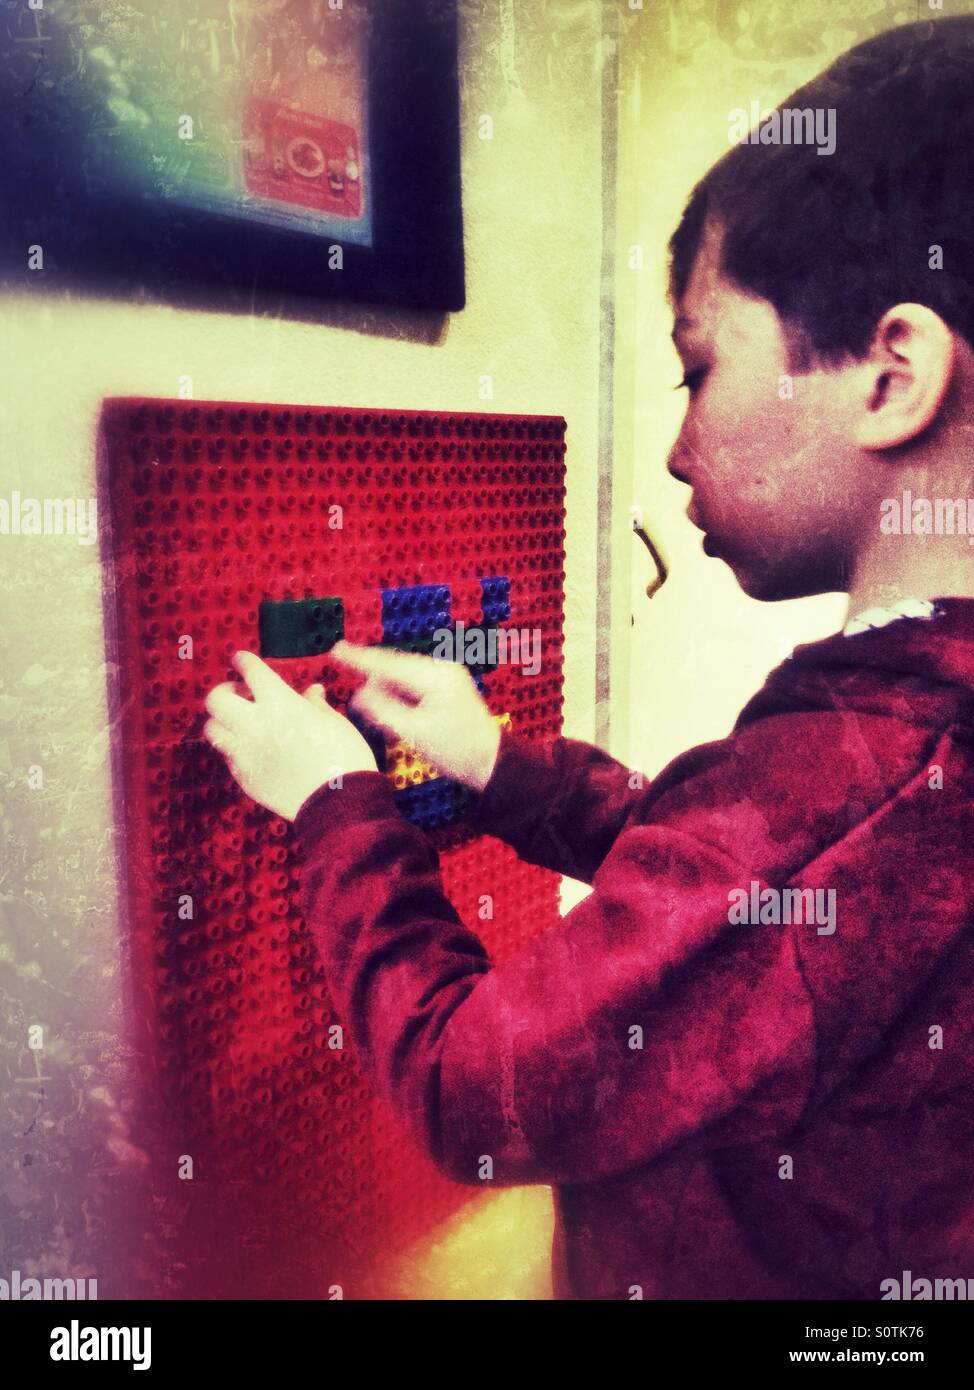 A young boy playing with building blocks in a waiting room. Stock Photo